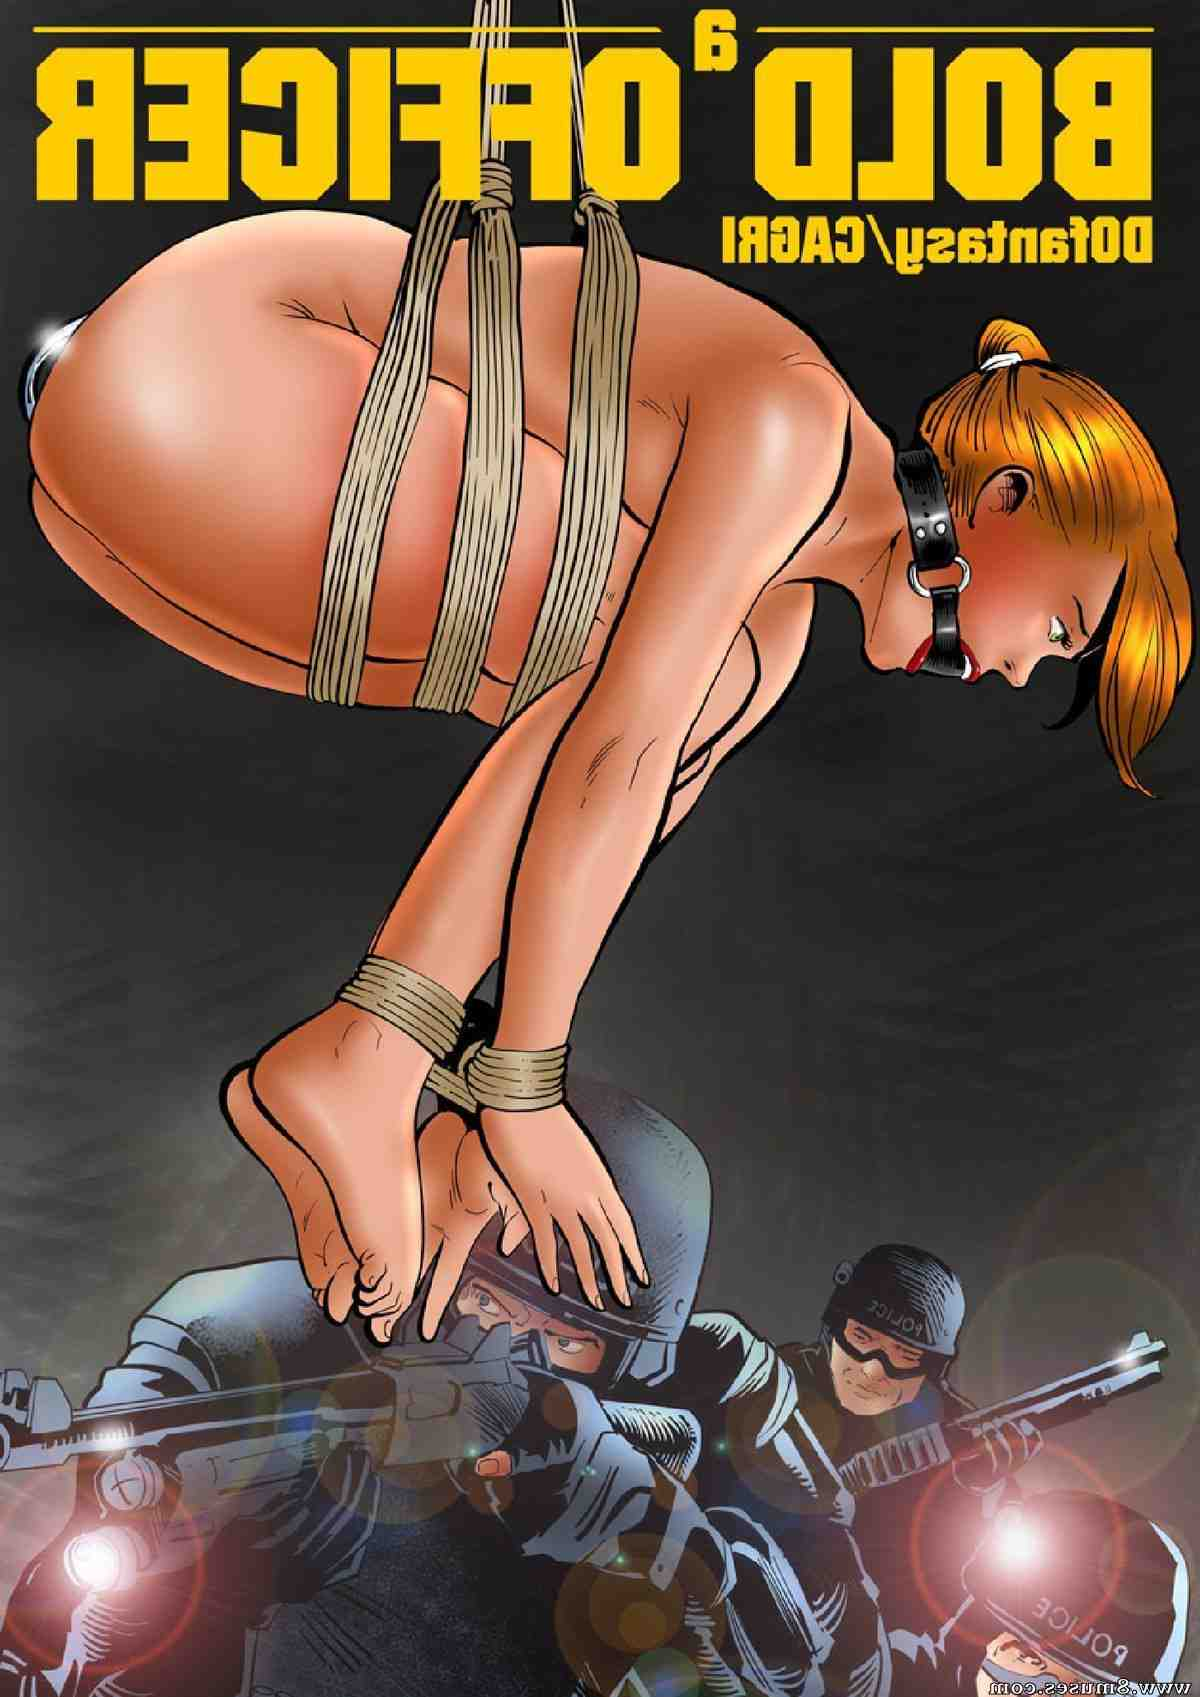 Fansadox-Comics/401-500/Fansadox-413-A-Bold-Officer-Cagri Fansadox_413_-_A_Bold_Officer_-_Cagri__8muses_-_Sex_and_Porn_Comics.jpg